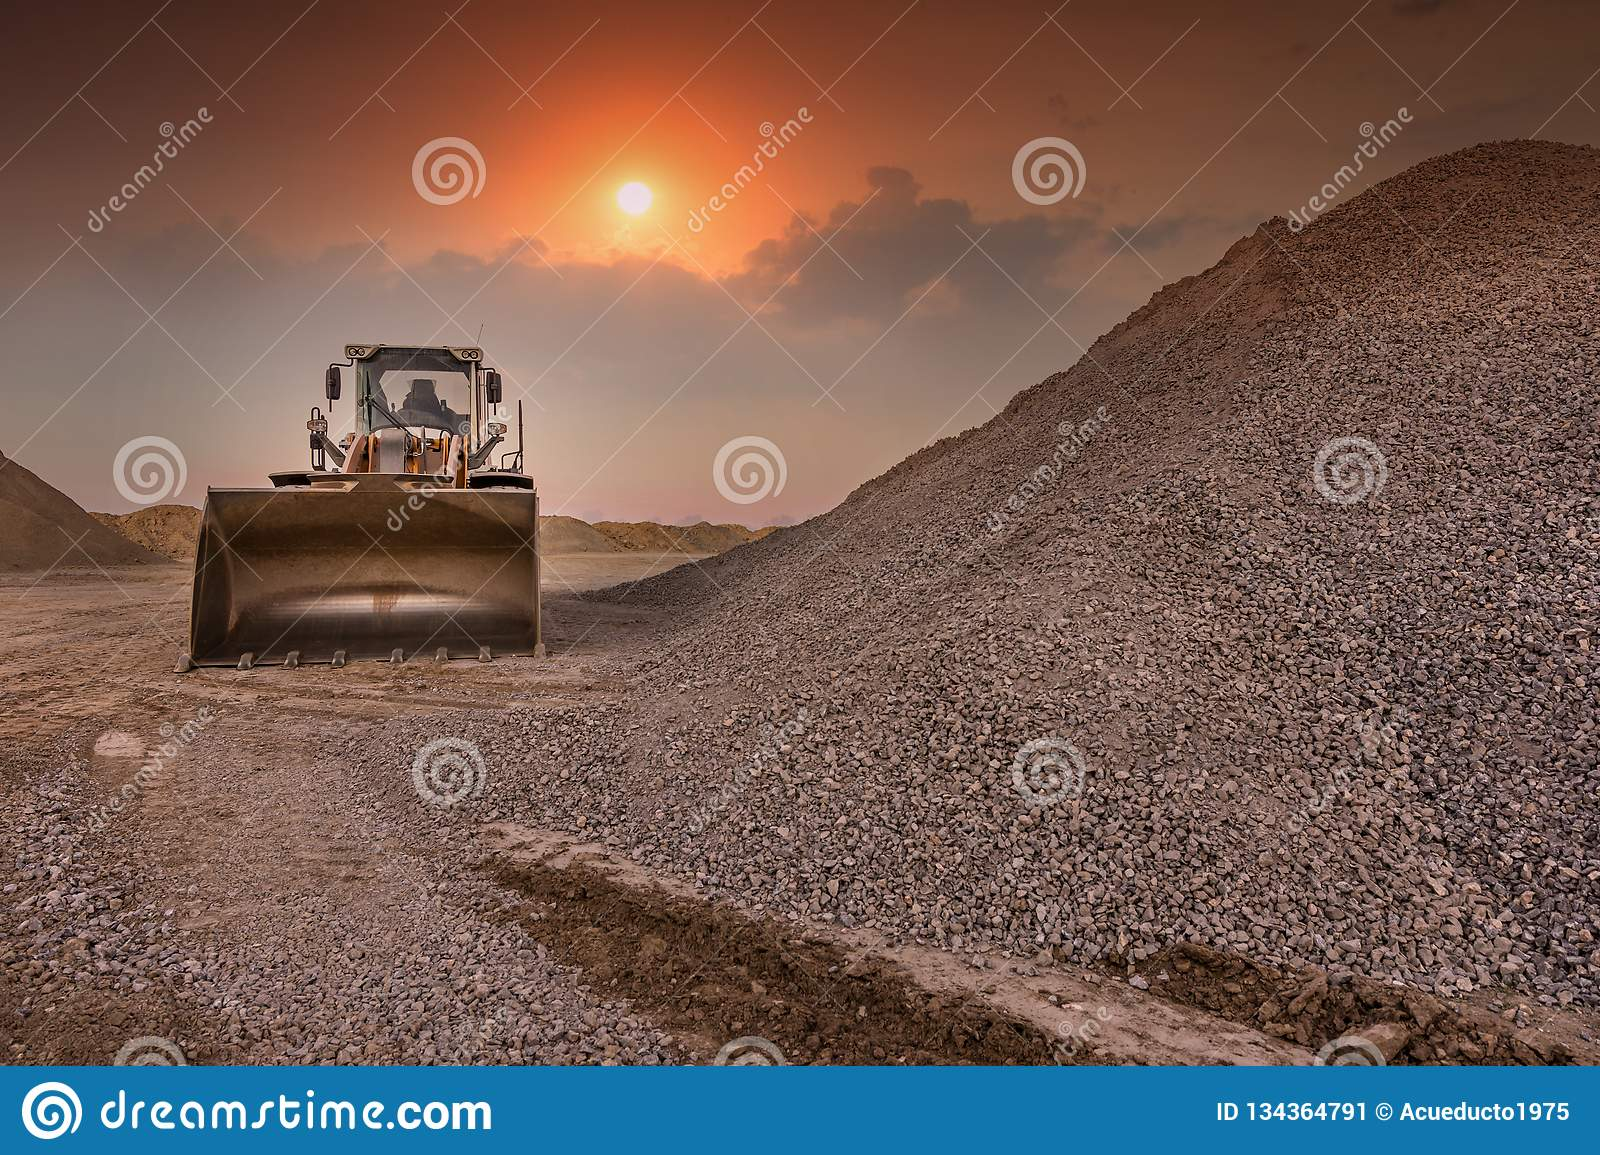 Excavator in a quarry of stone transformation in gravel for the construction of a road